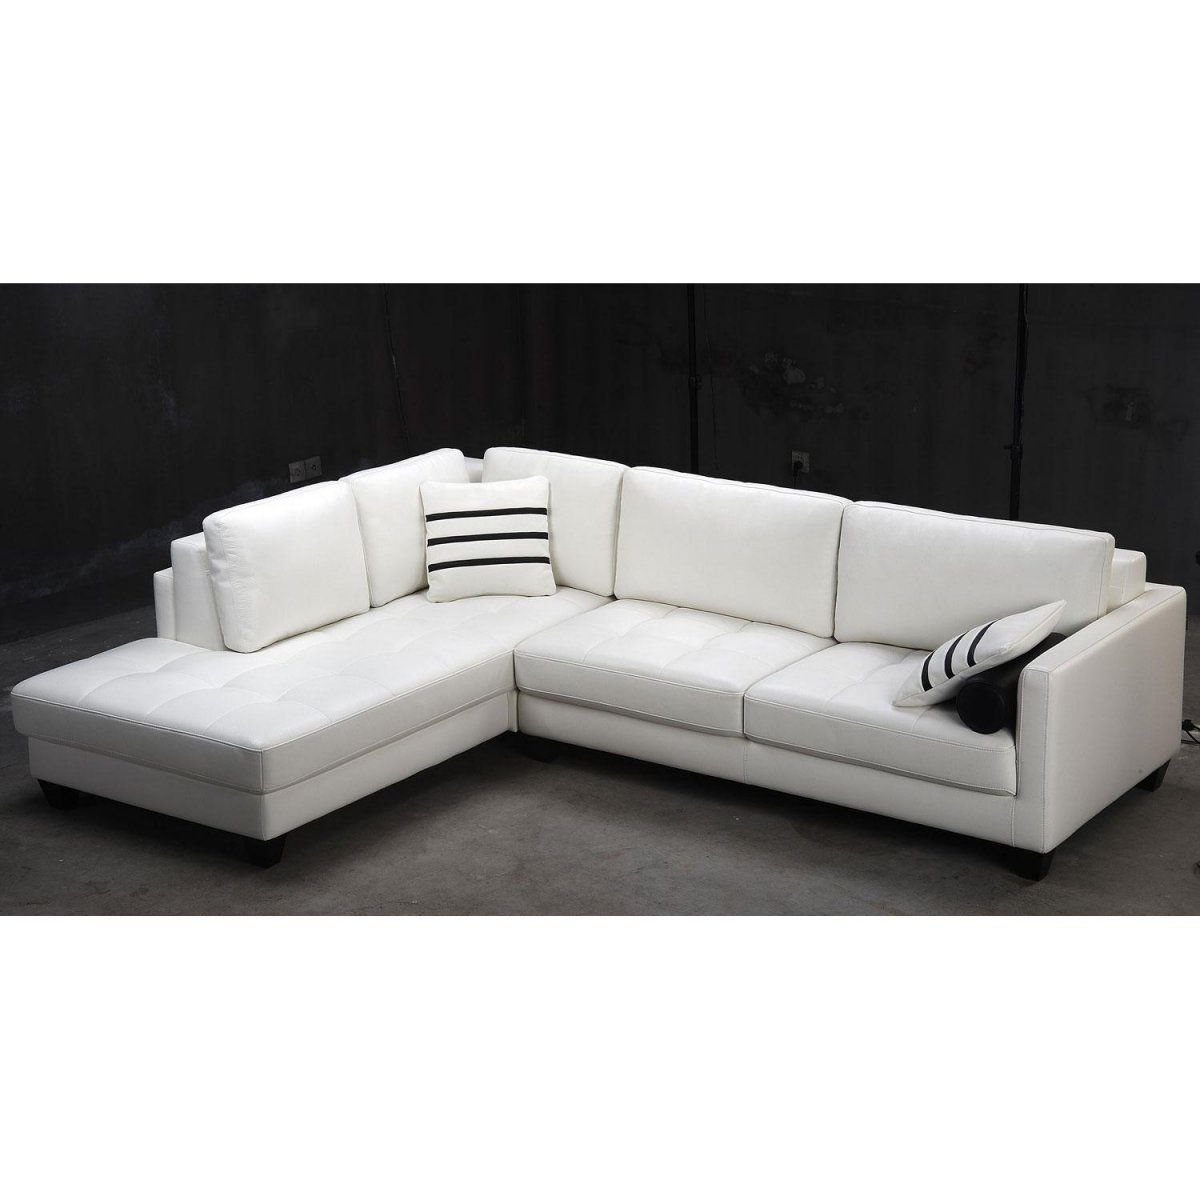 White Leather Chaise Sofa In 2020 White Leather Sofas White Leather Couch